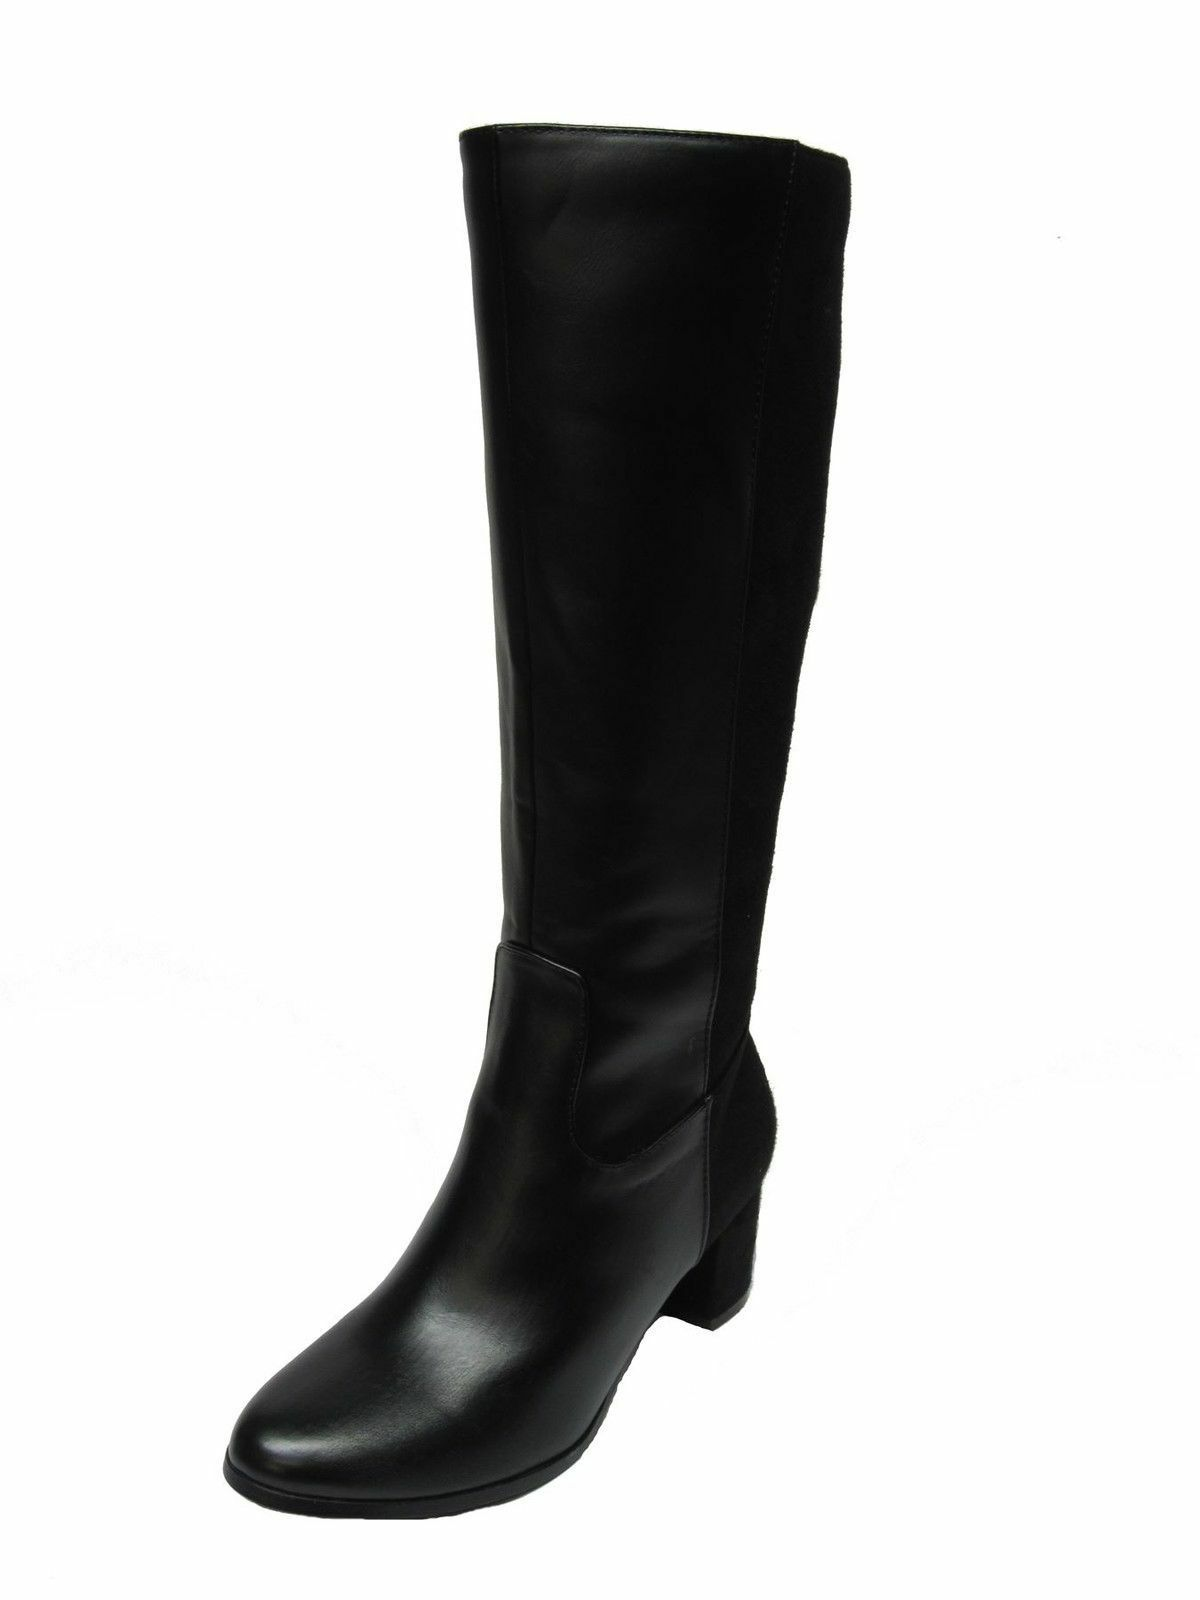 Spot On  F50366 Black Black Black Synthetic Smart Zip Up  Long Boots 093923